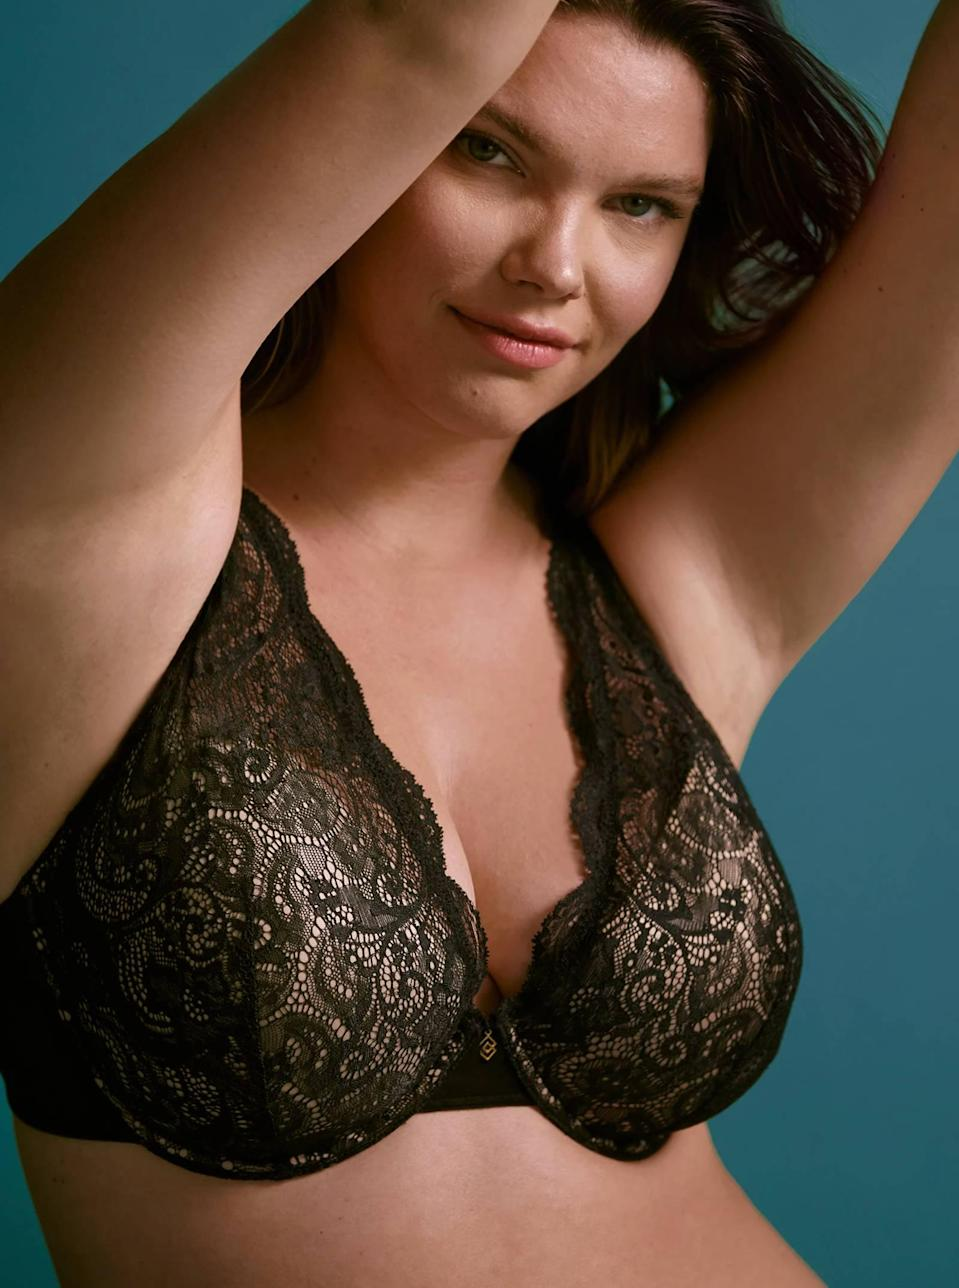 "<p><strong>Key selling points:</strong> With a size range from AA-I, including half-cup sizes, this lacy plunge bra offers four shade options and fully customizable support with removable pads.</p> <p><strong>What customers say:</strong> ""I bought a couple of kits for a complete intimate drawer overhaul. For me, this bra was the best of the best. It was the sexiest, with the lace, but it surprised me as also being the most comfortable! The band felt oh-so-soft. I went on and bought another color!"" — <em>Amy, reviewer on</em> <a href=""https://cna.st/affiliate-link/74gALtHrcLQ8SvMqvBGFPocD5XxxH65dg4Ai1upFDrmHo3C9YXXZy5iFT4r6DiRm28sFVWD8m2ZBq9hSjaeGSqXTRZskPhNJAPFaYhqBtR57HVtiDq2yfxHrMvoAyku1cwegJE?cid=606b5602556b8d39a7ab1936"" rel=""nofollow noopener"" target=""_blank"" data-ylk=""slk:ThirdLove"" class=""link rapid-noclick-resp""><em>ThirdLove</em></a></p> $70, ThirdLove. <a href=""https://www.thirdlove.com/products/24-7-lace-contour-plunge-bra-black"" rel=""nofollow noopener"" target=""_blank"" data-ylk=""slk:Get it now!"" class=""link rapid-noclick-resp"">Get it now!</a>"